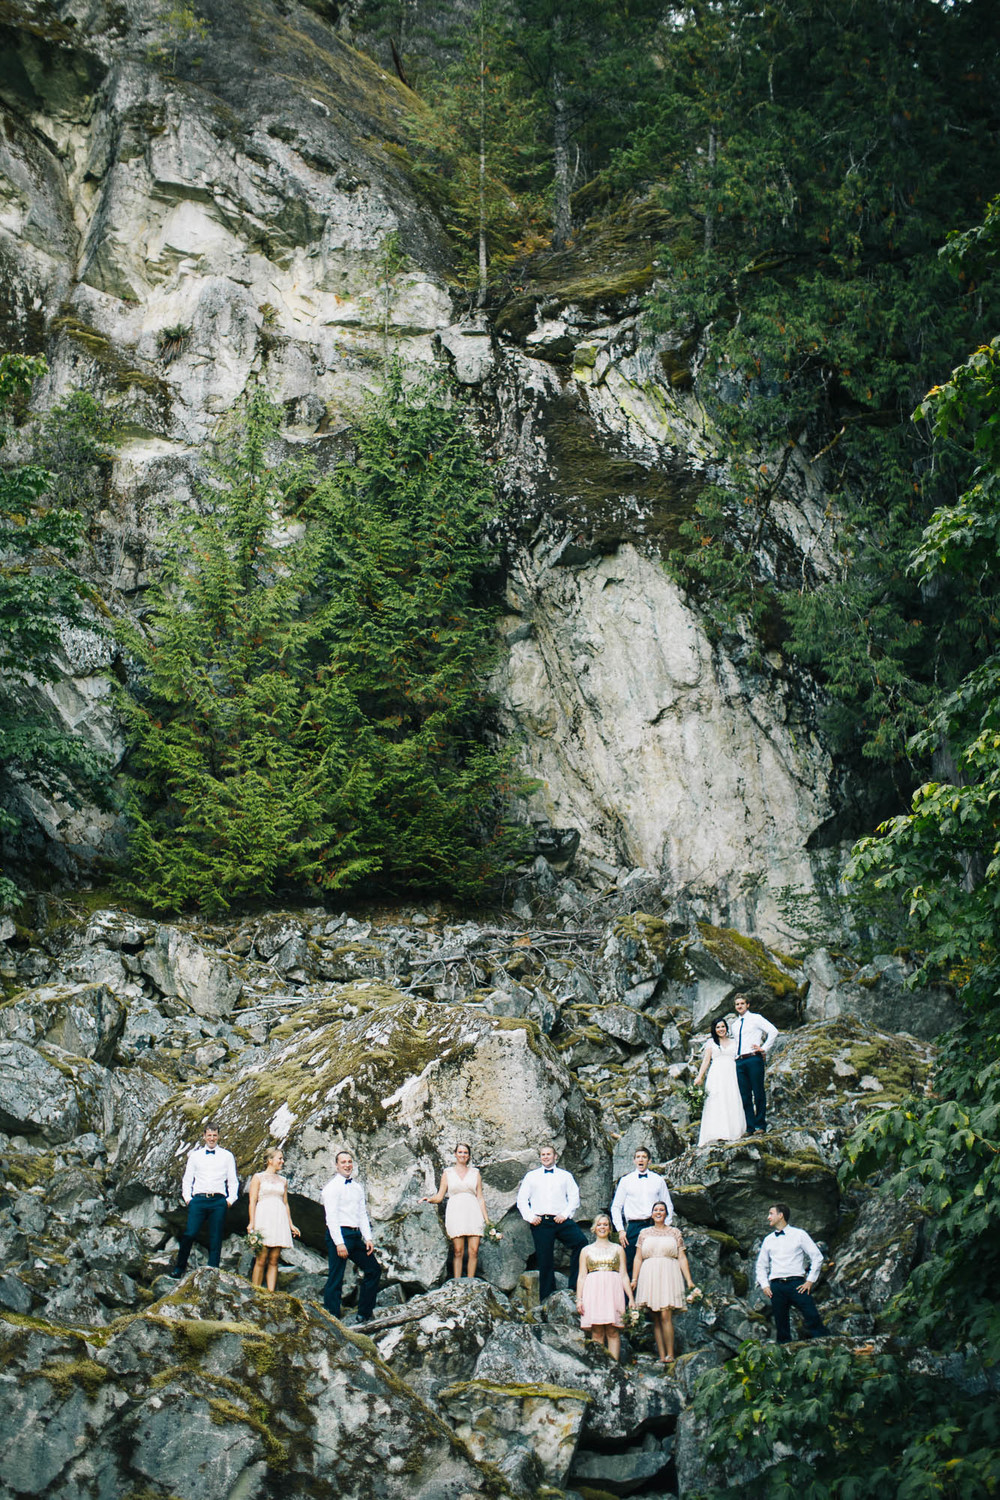 20140920_wedding_best_squamish_evanslake_photographer_photography_squamish__233.jpg